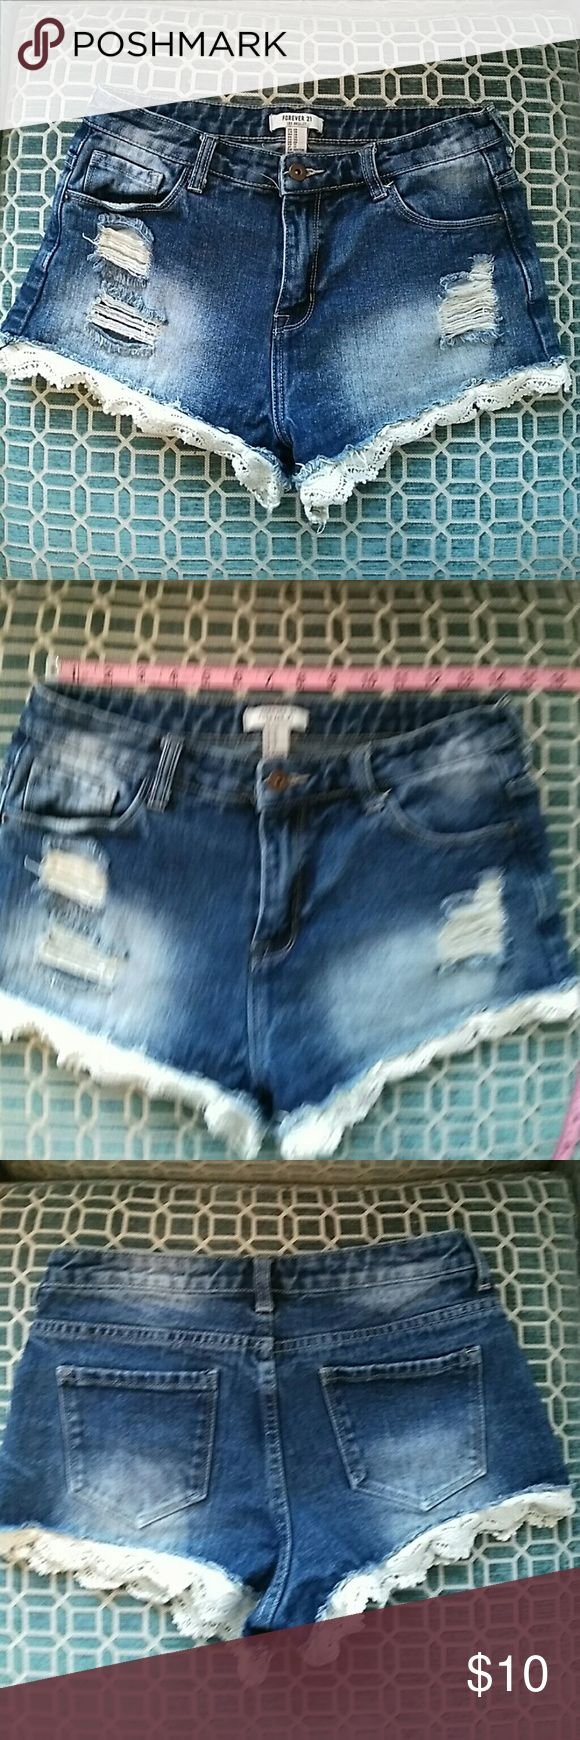 F21 lace trimmed shorts size 28 F21 lace trimmed shorts size 28. A few spots where the lace hasbtorn, shown in fourth picture. Forever 21 Shorts Jean Shorts